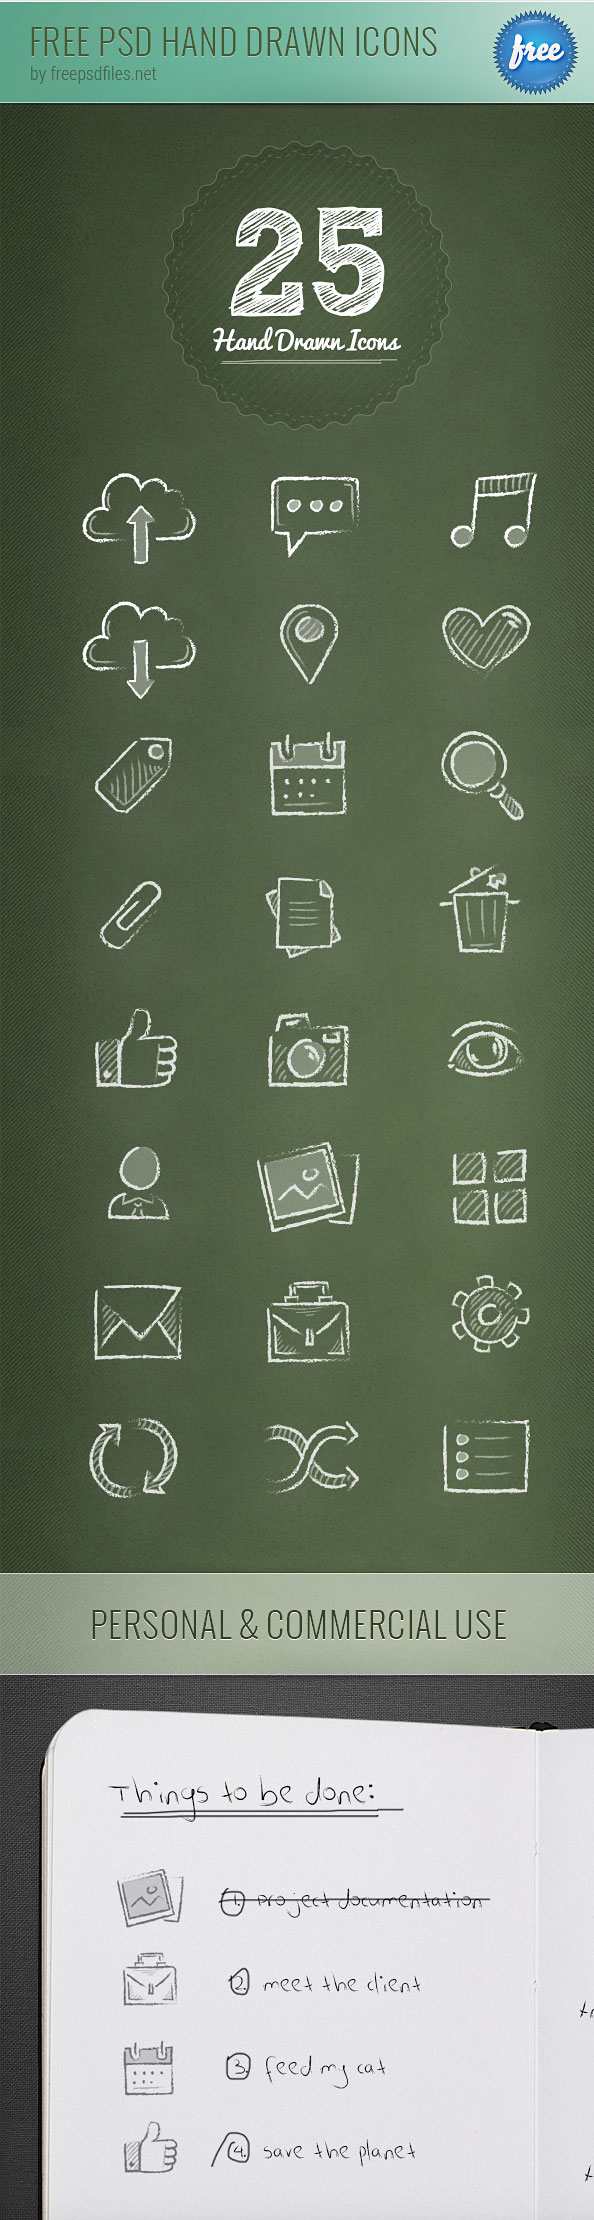 Free PSD Hand Drawn Icons Preview